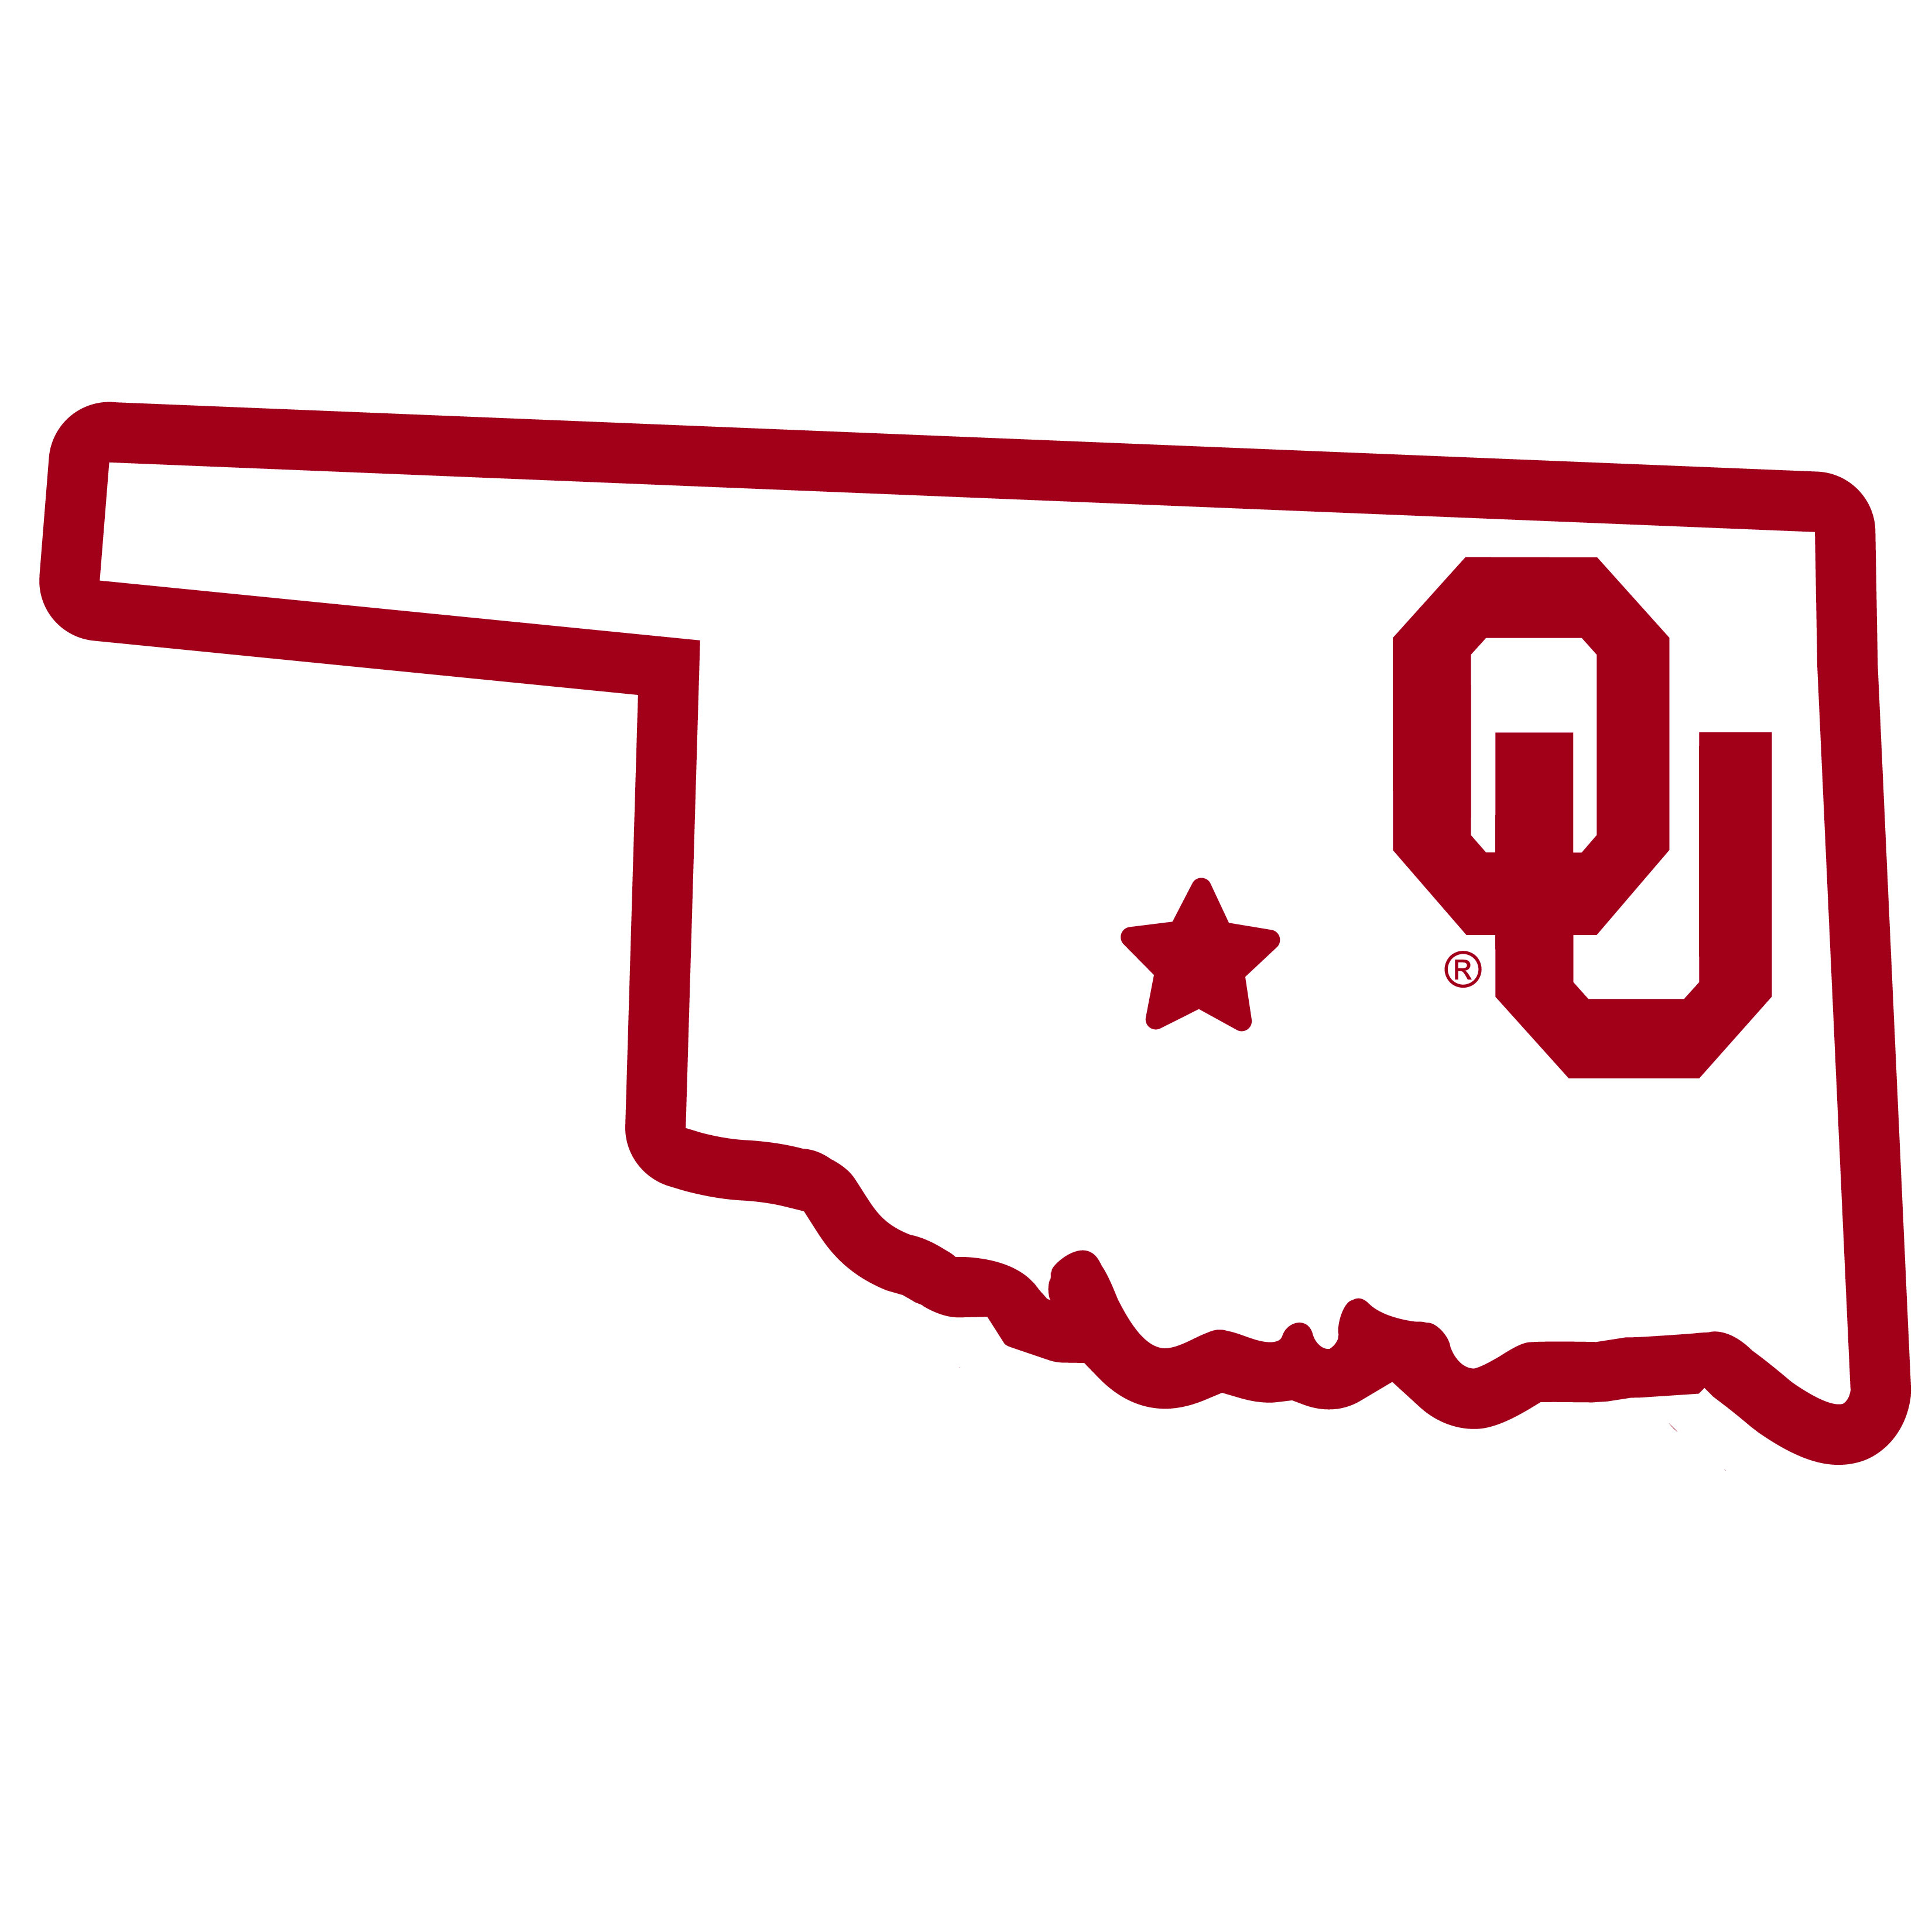 Oklahoma Sooners Home State 11 Inch Magnet - Whether you are caravaning to the game or having a tailgate party make sure you car is wearing its fan gear with our extra large, 11 inch Oklahoma Sooners home state magnets. These striking magnets can be easily placed on for game day and removed without he residue left by decals. The design features a bright state outline with the location of the team highlighted with a football and a large team logo.